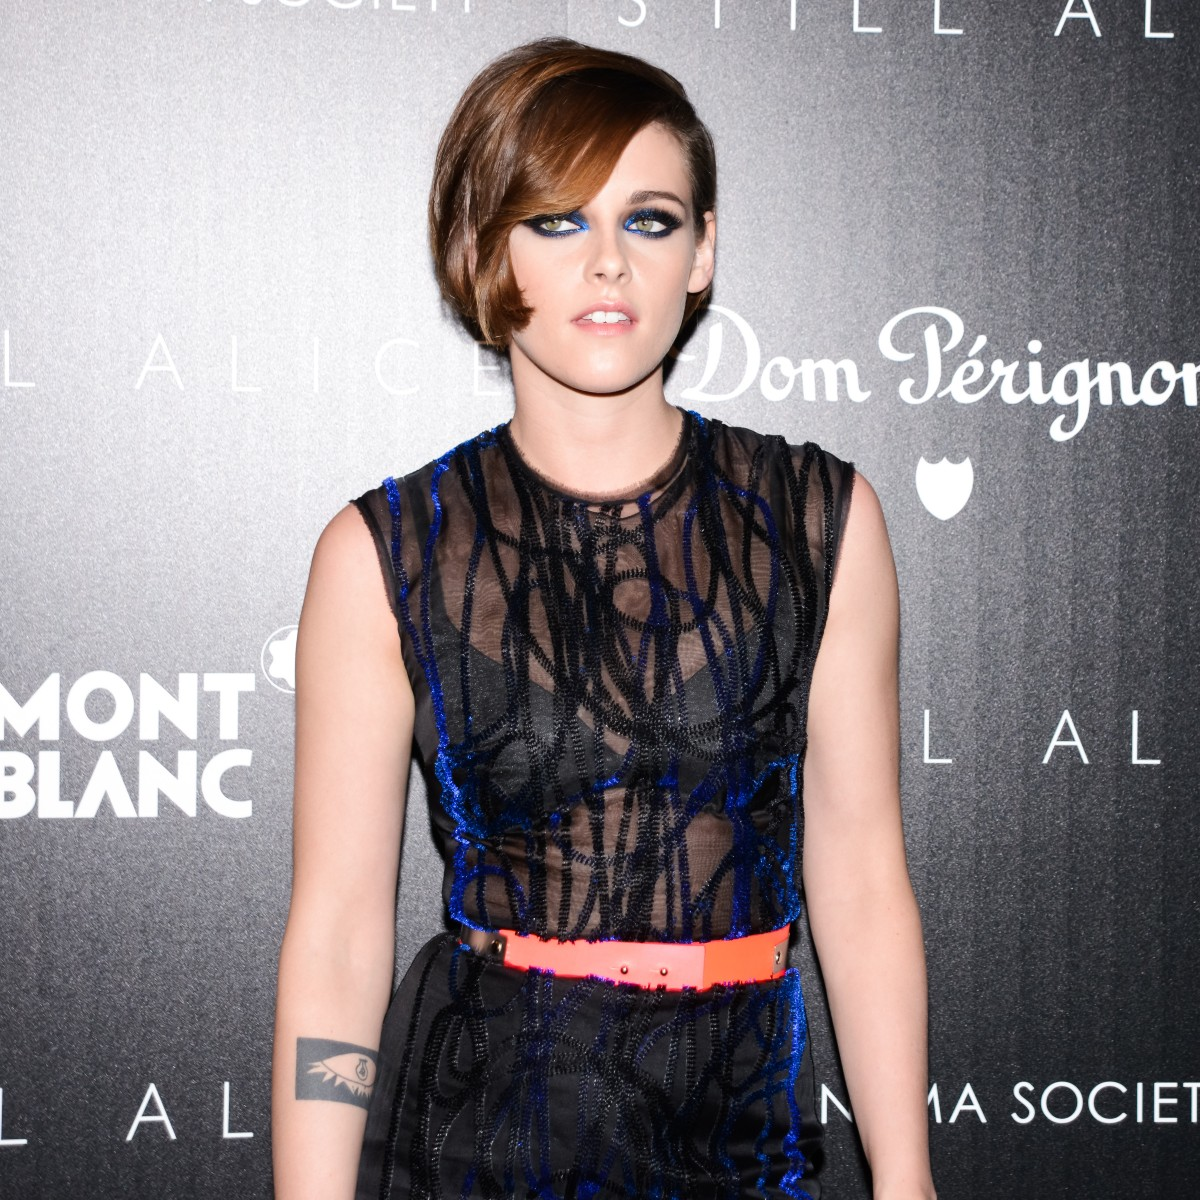 THE CINEMA SOCIETY with MONTBLANC and DOM PERIGNON host a screening of SONY PICTURES CLASSICS' Still